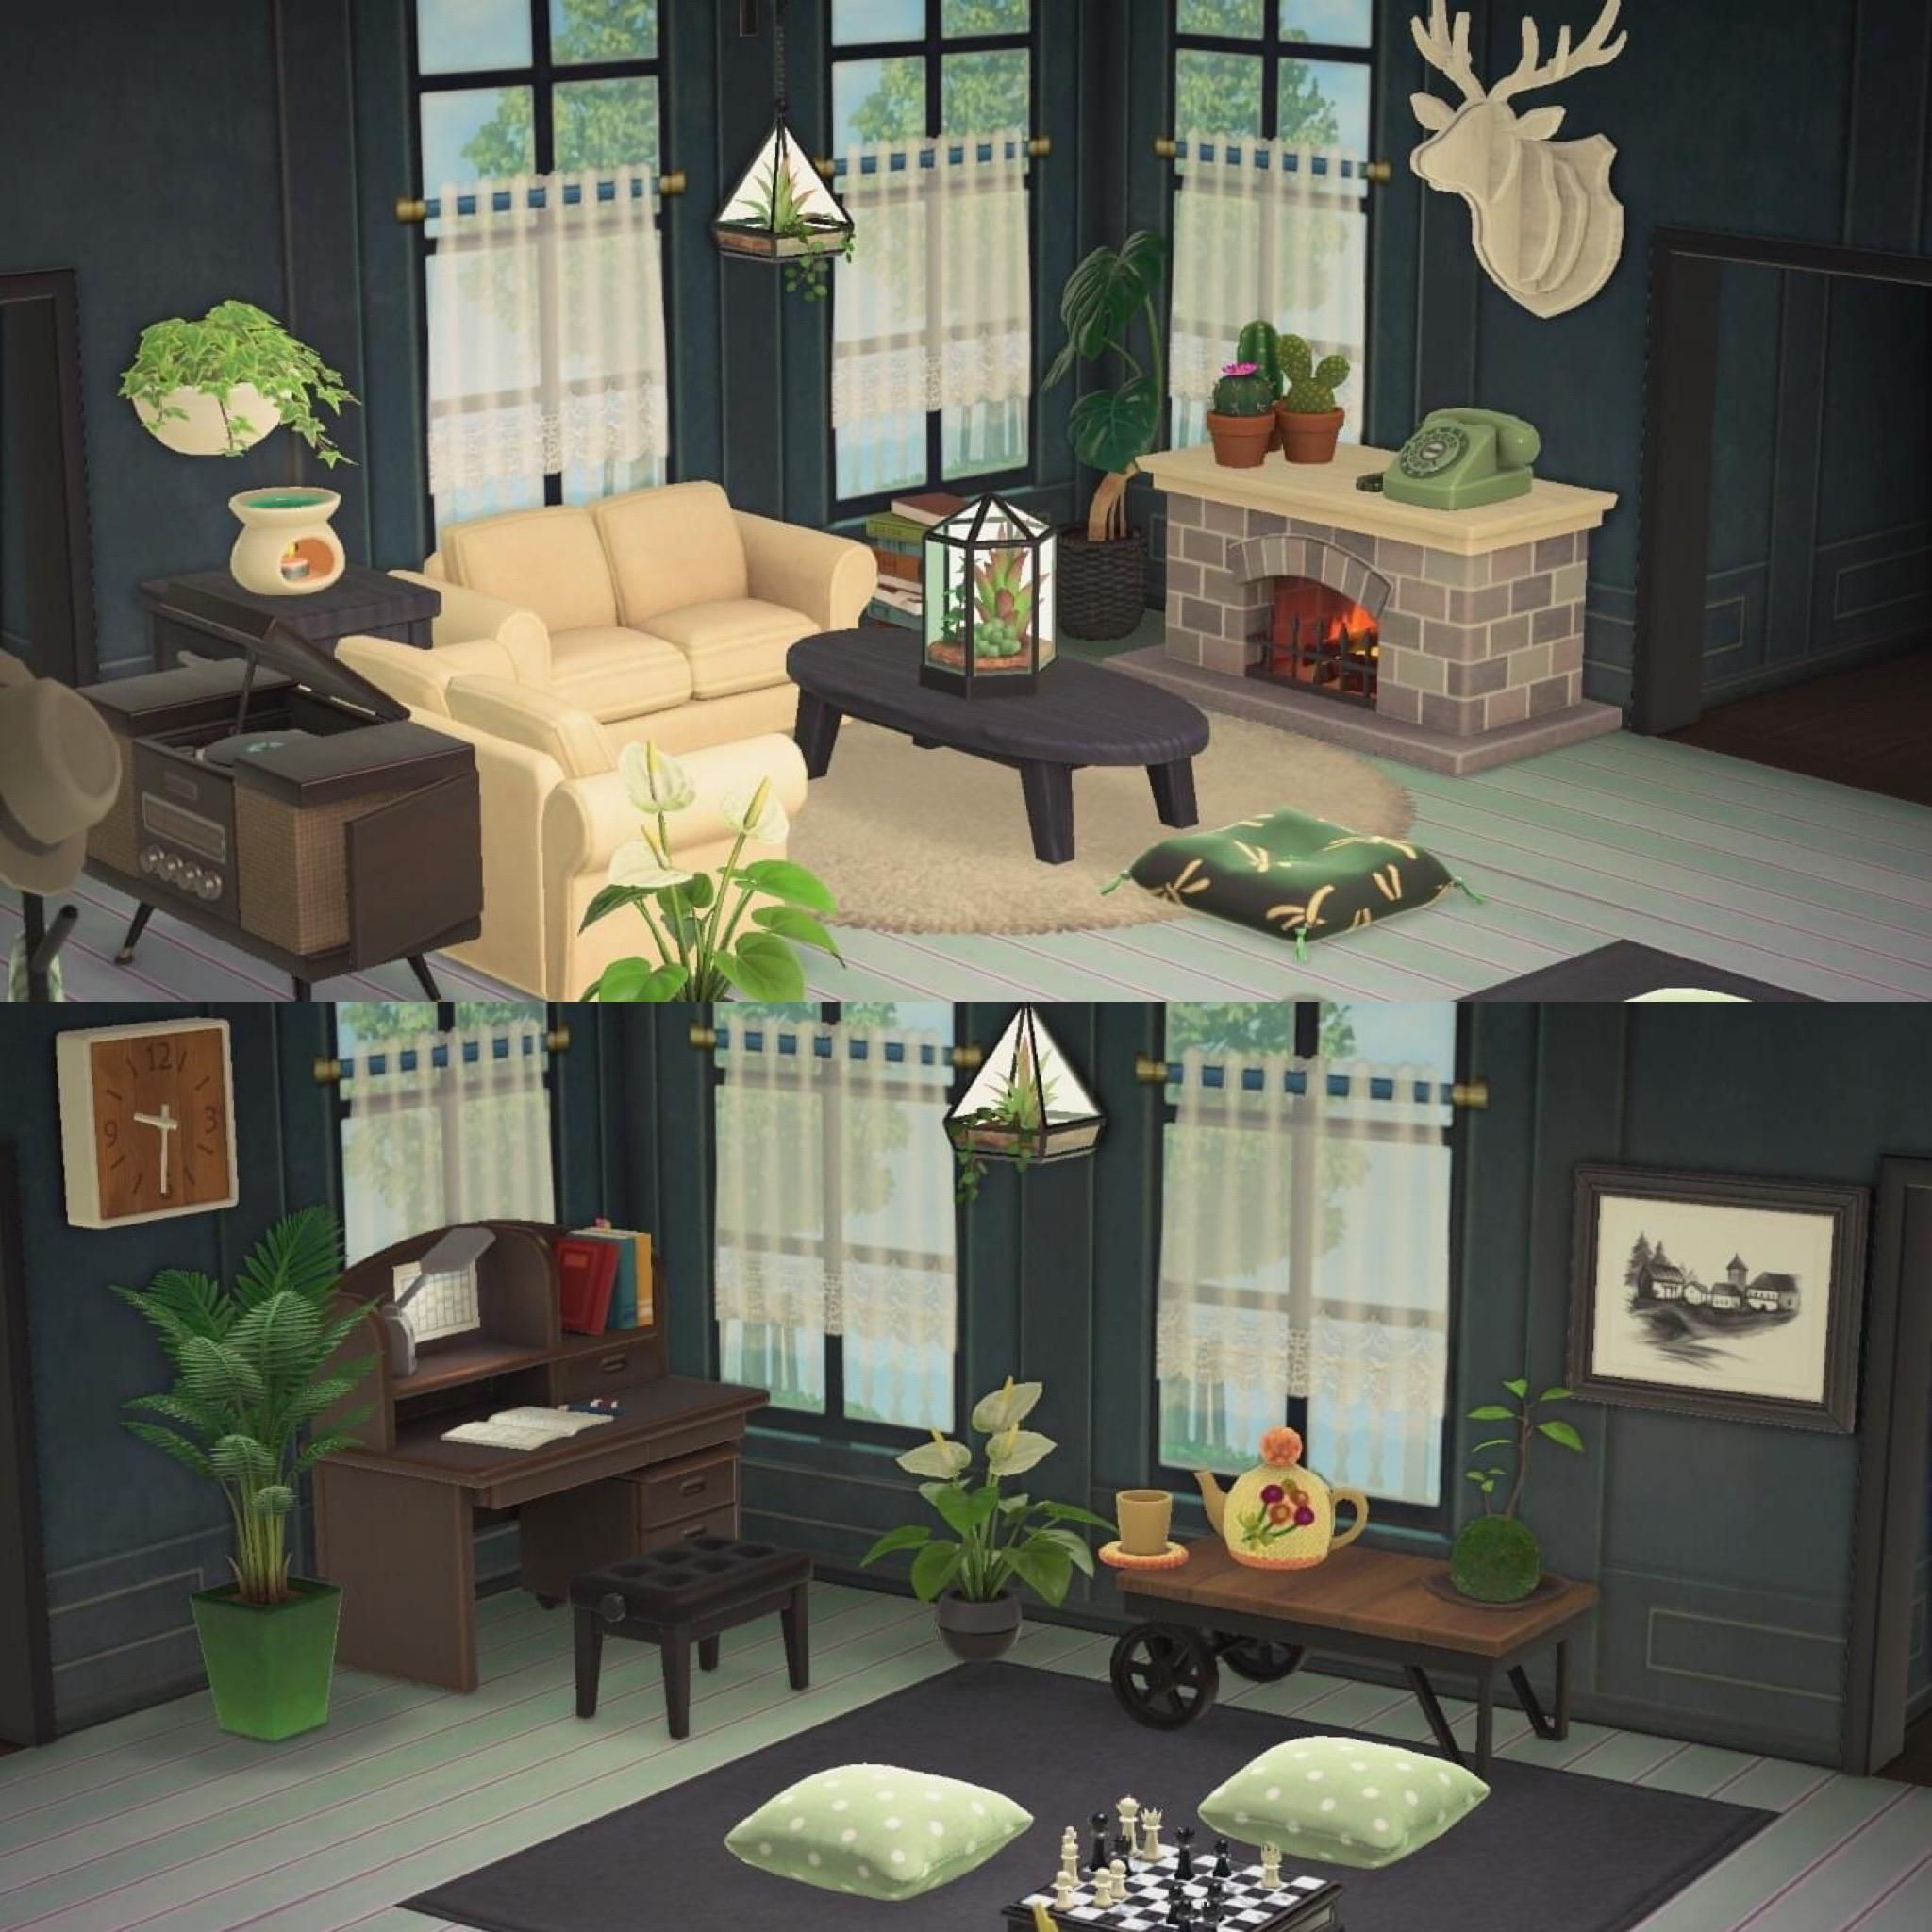 Acnh Living Room By U Lil Gingerale On Reddit In 2020 ... on Animal Crossing New Horizon Living Room Ideas  id=94217